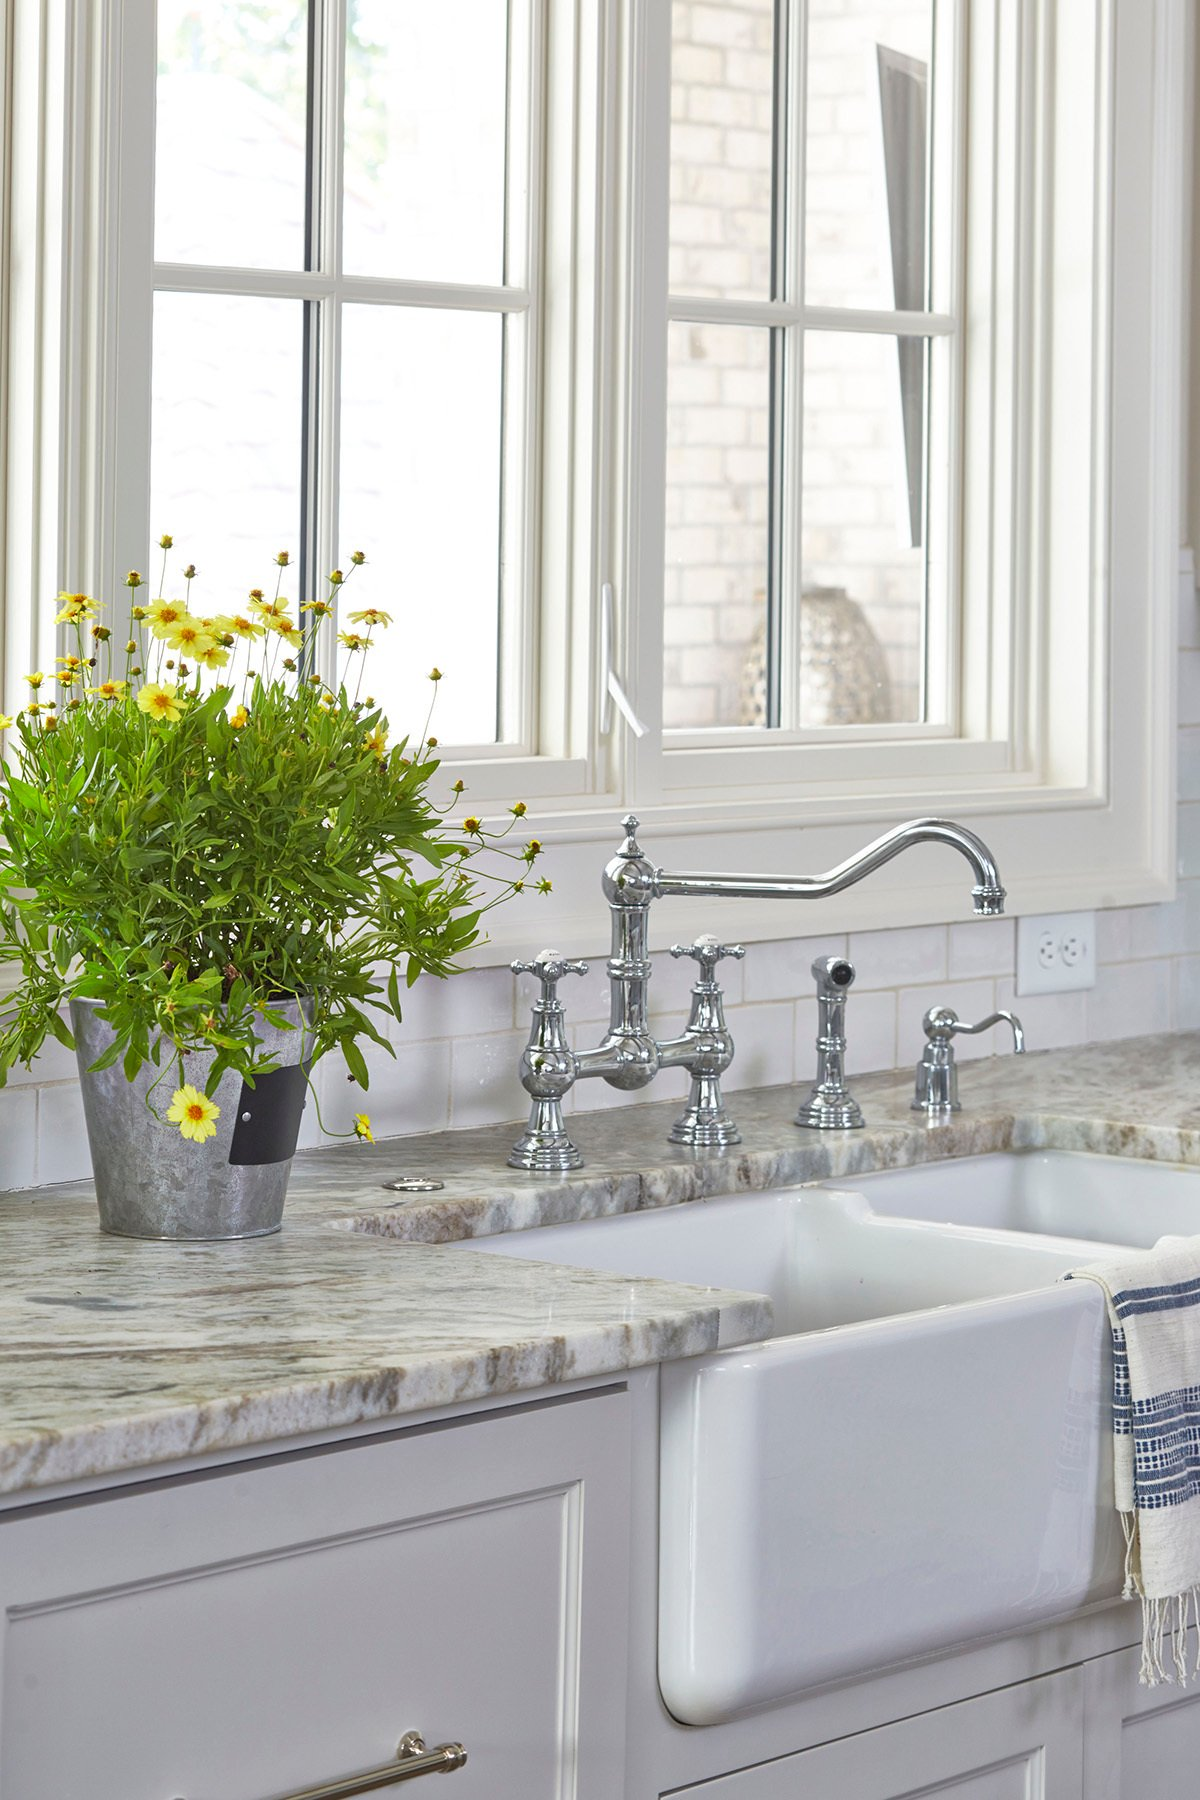 White cabinetry with a white farmhouse sink.